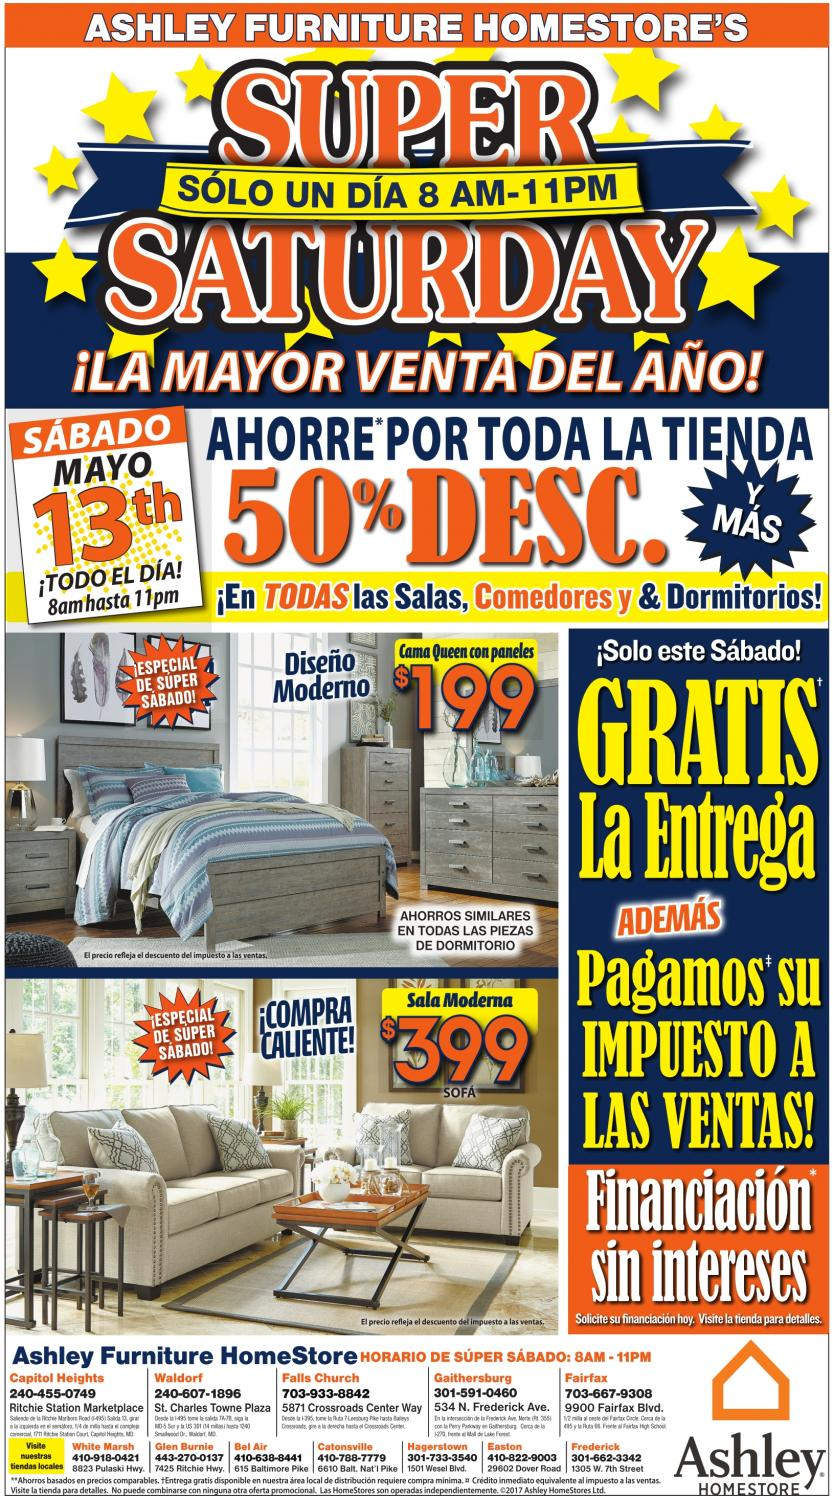 La Mayor Venta Del Año Ashley Furniture Home Frederick Md